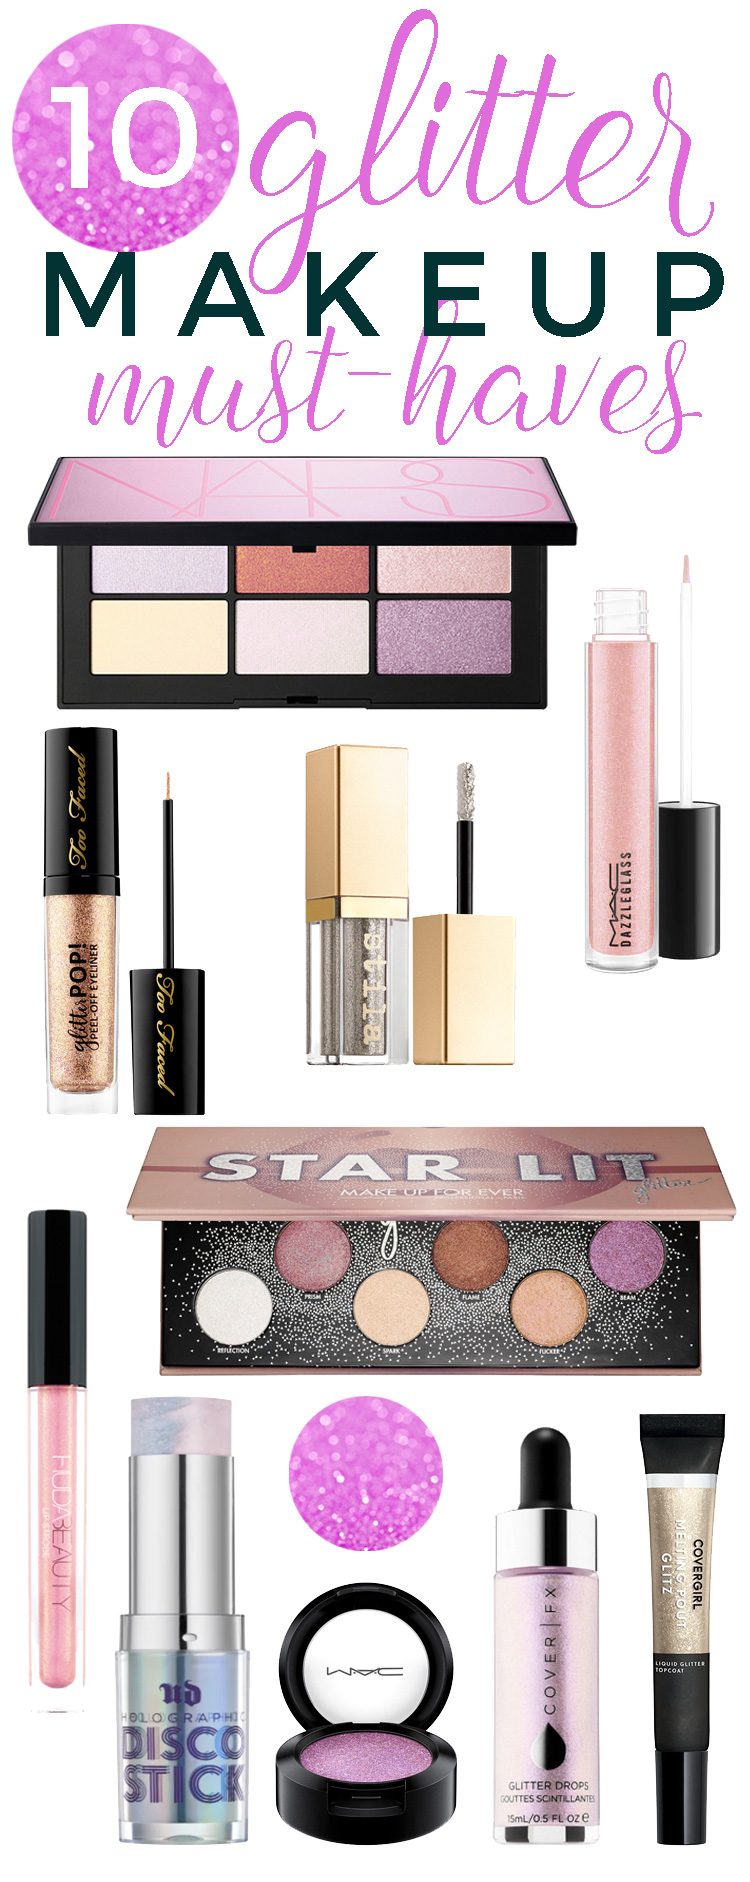 10 Glitter Makeup Must-Haves to Be on Trend with this Year's Updated Glitter Look